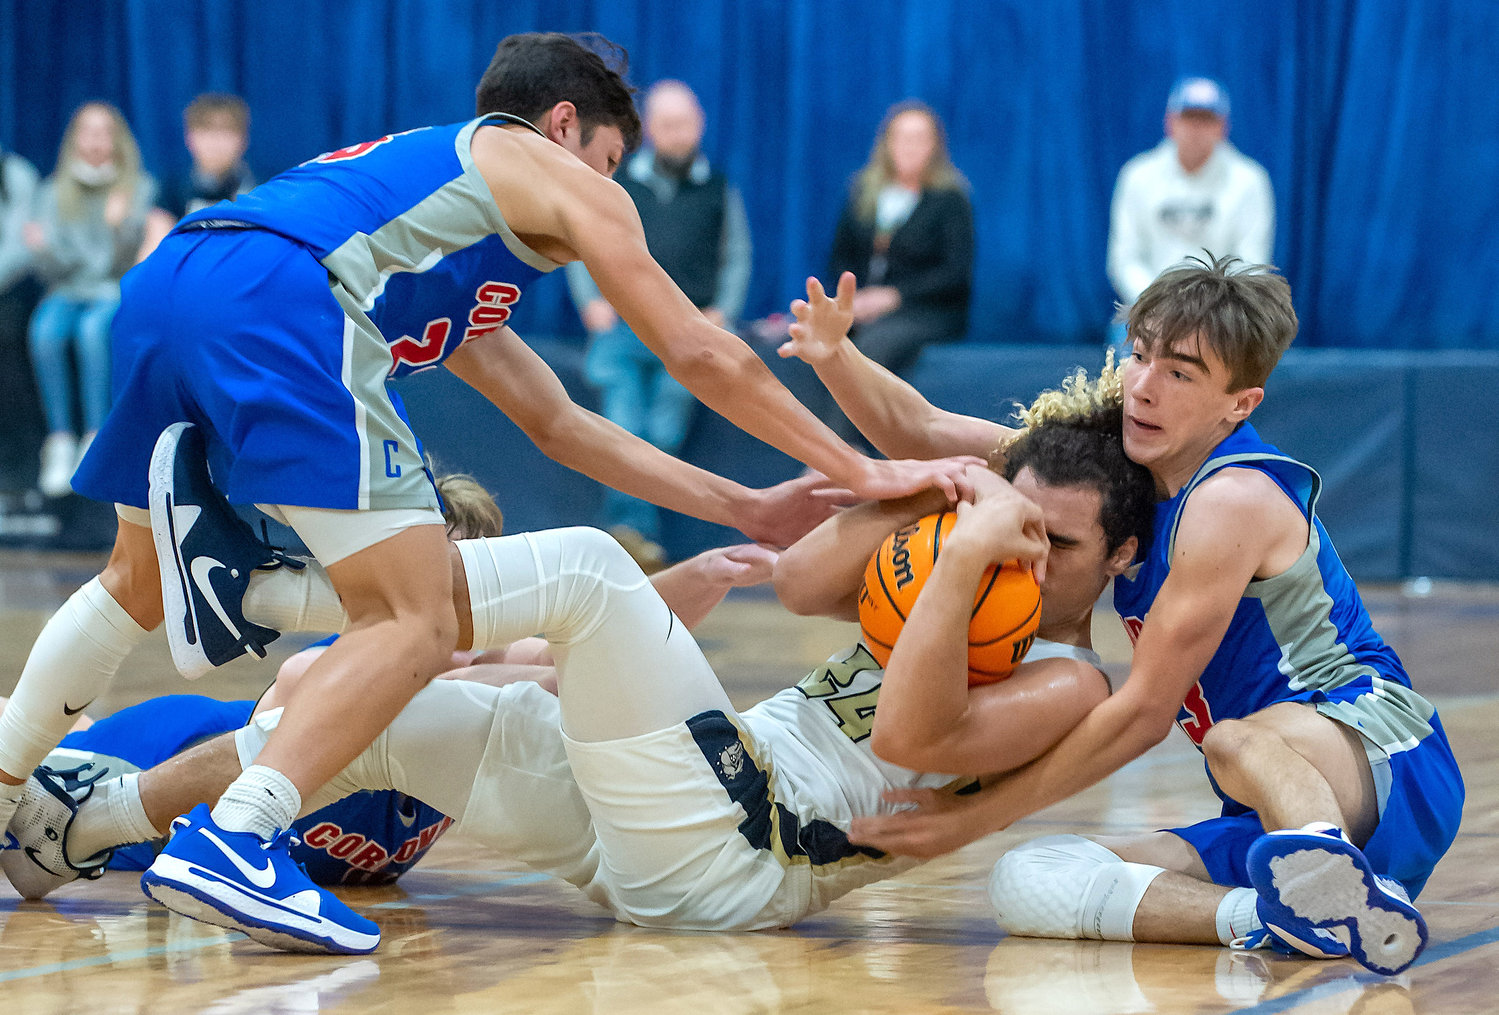 Cordova and Dora players battle for a loose ball during their game on Friday night.